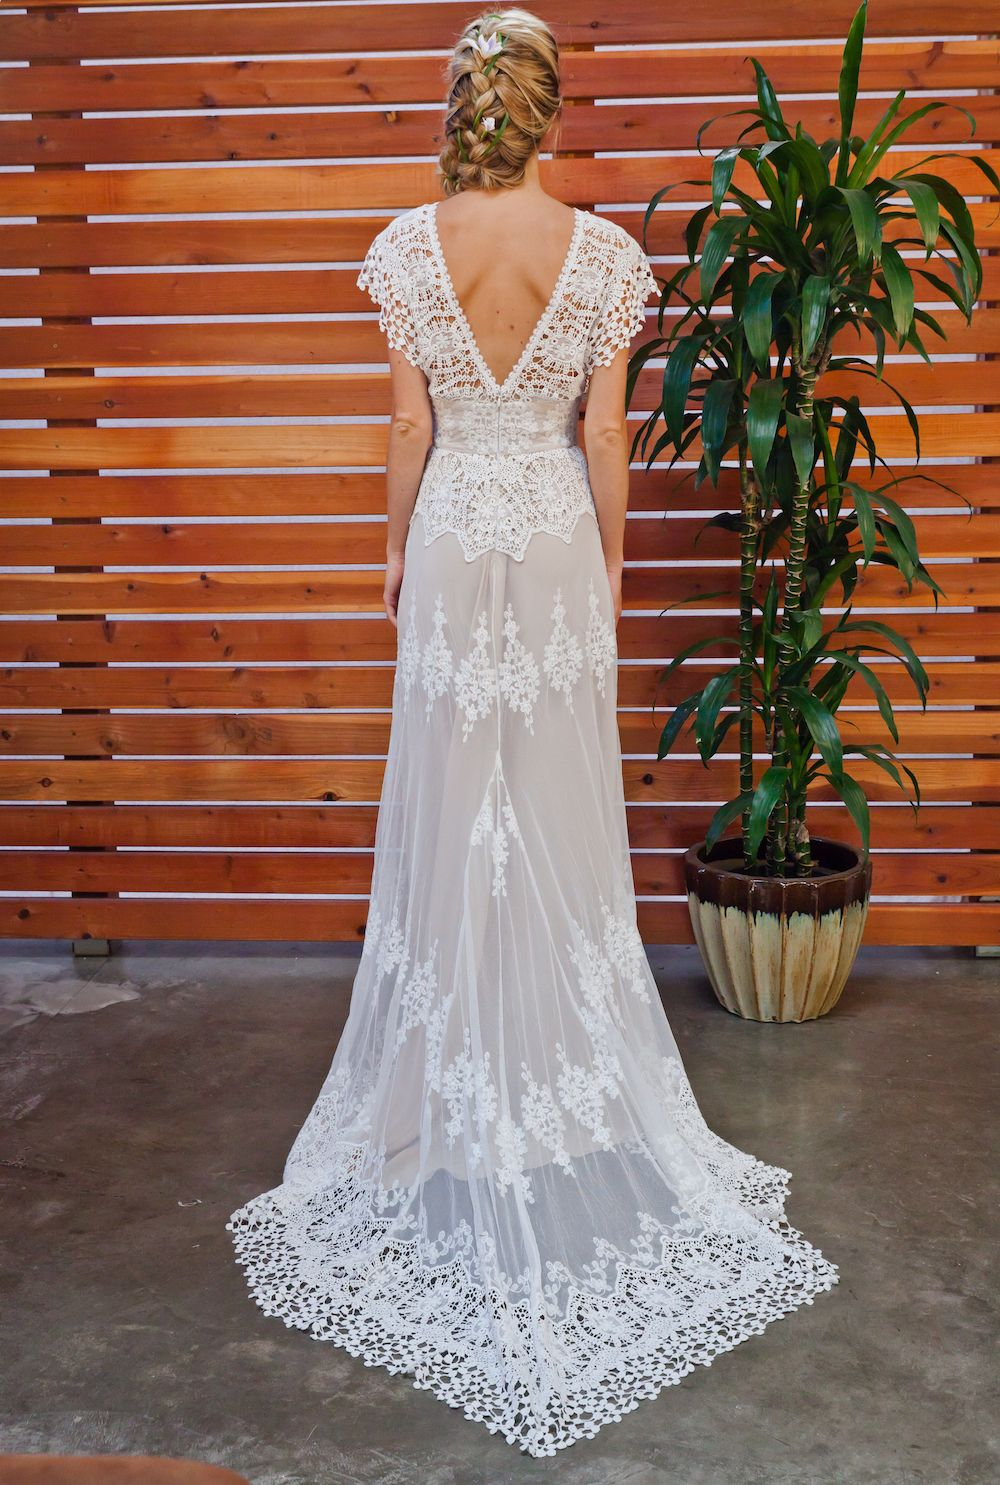 dreamy-cotton-lace-bohemian-wedding-gown